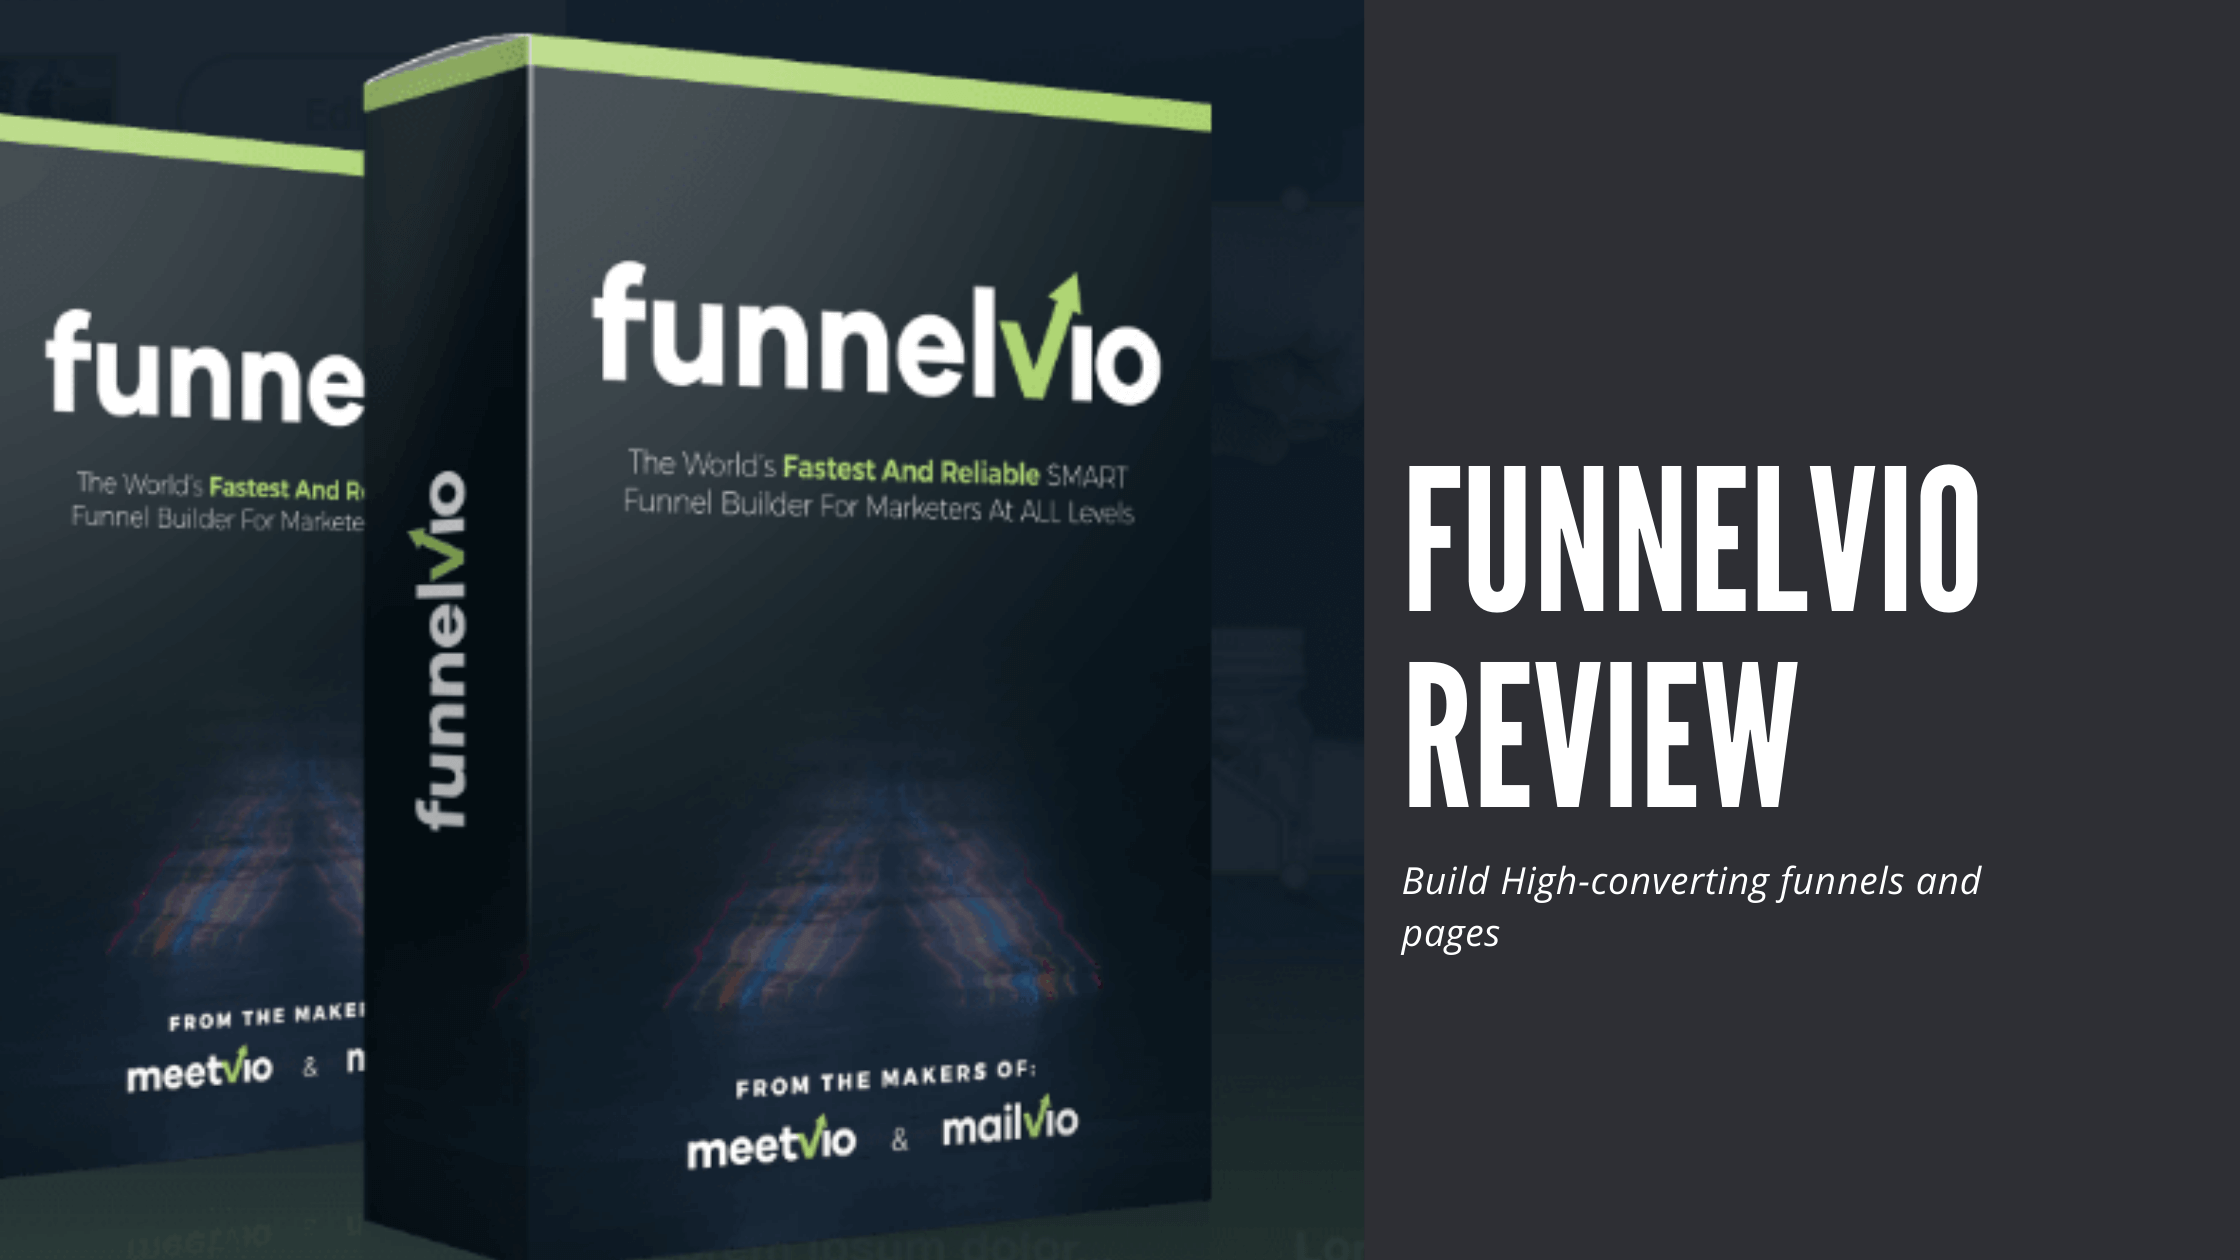 FunnelVio Review - Build and Launch High-Converting Funnels